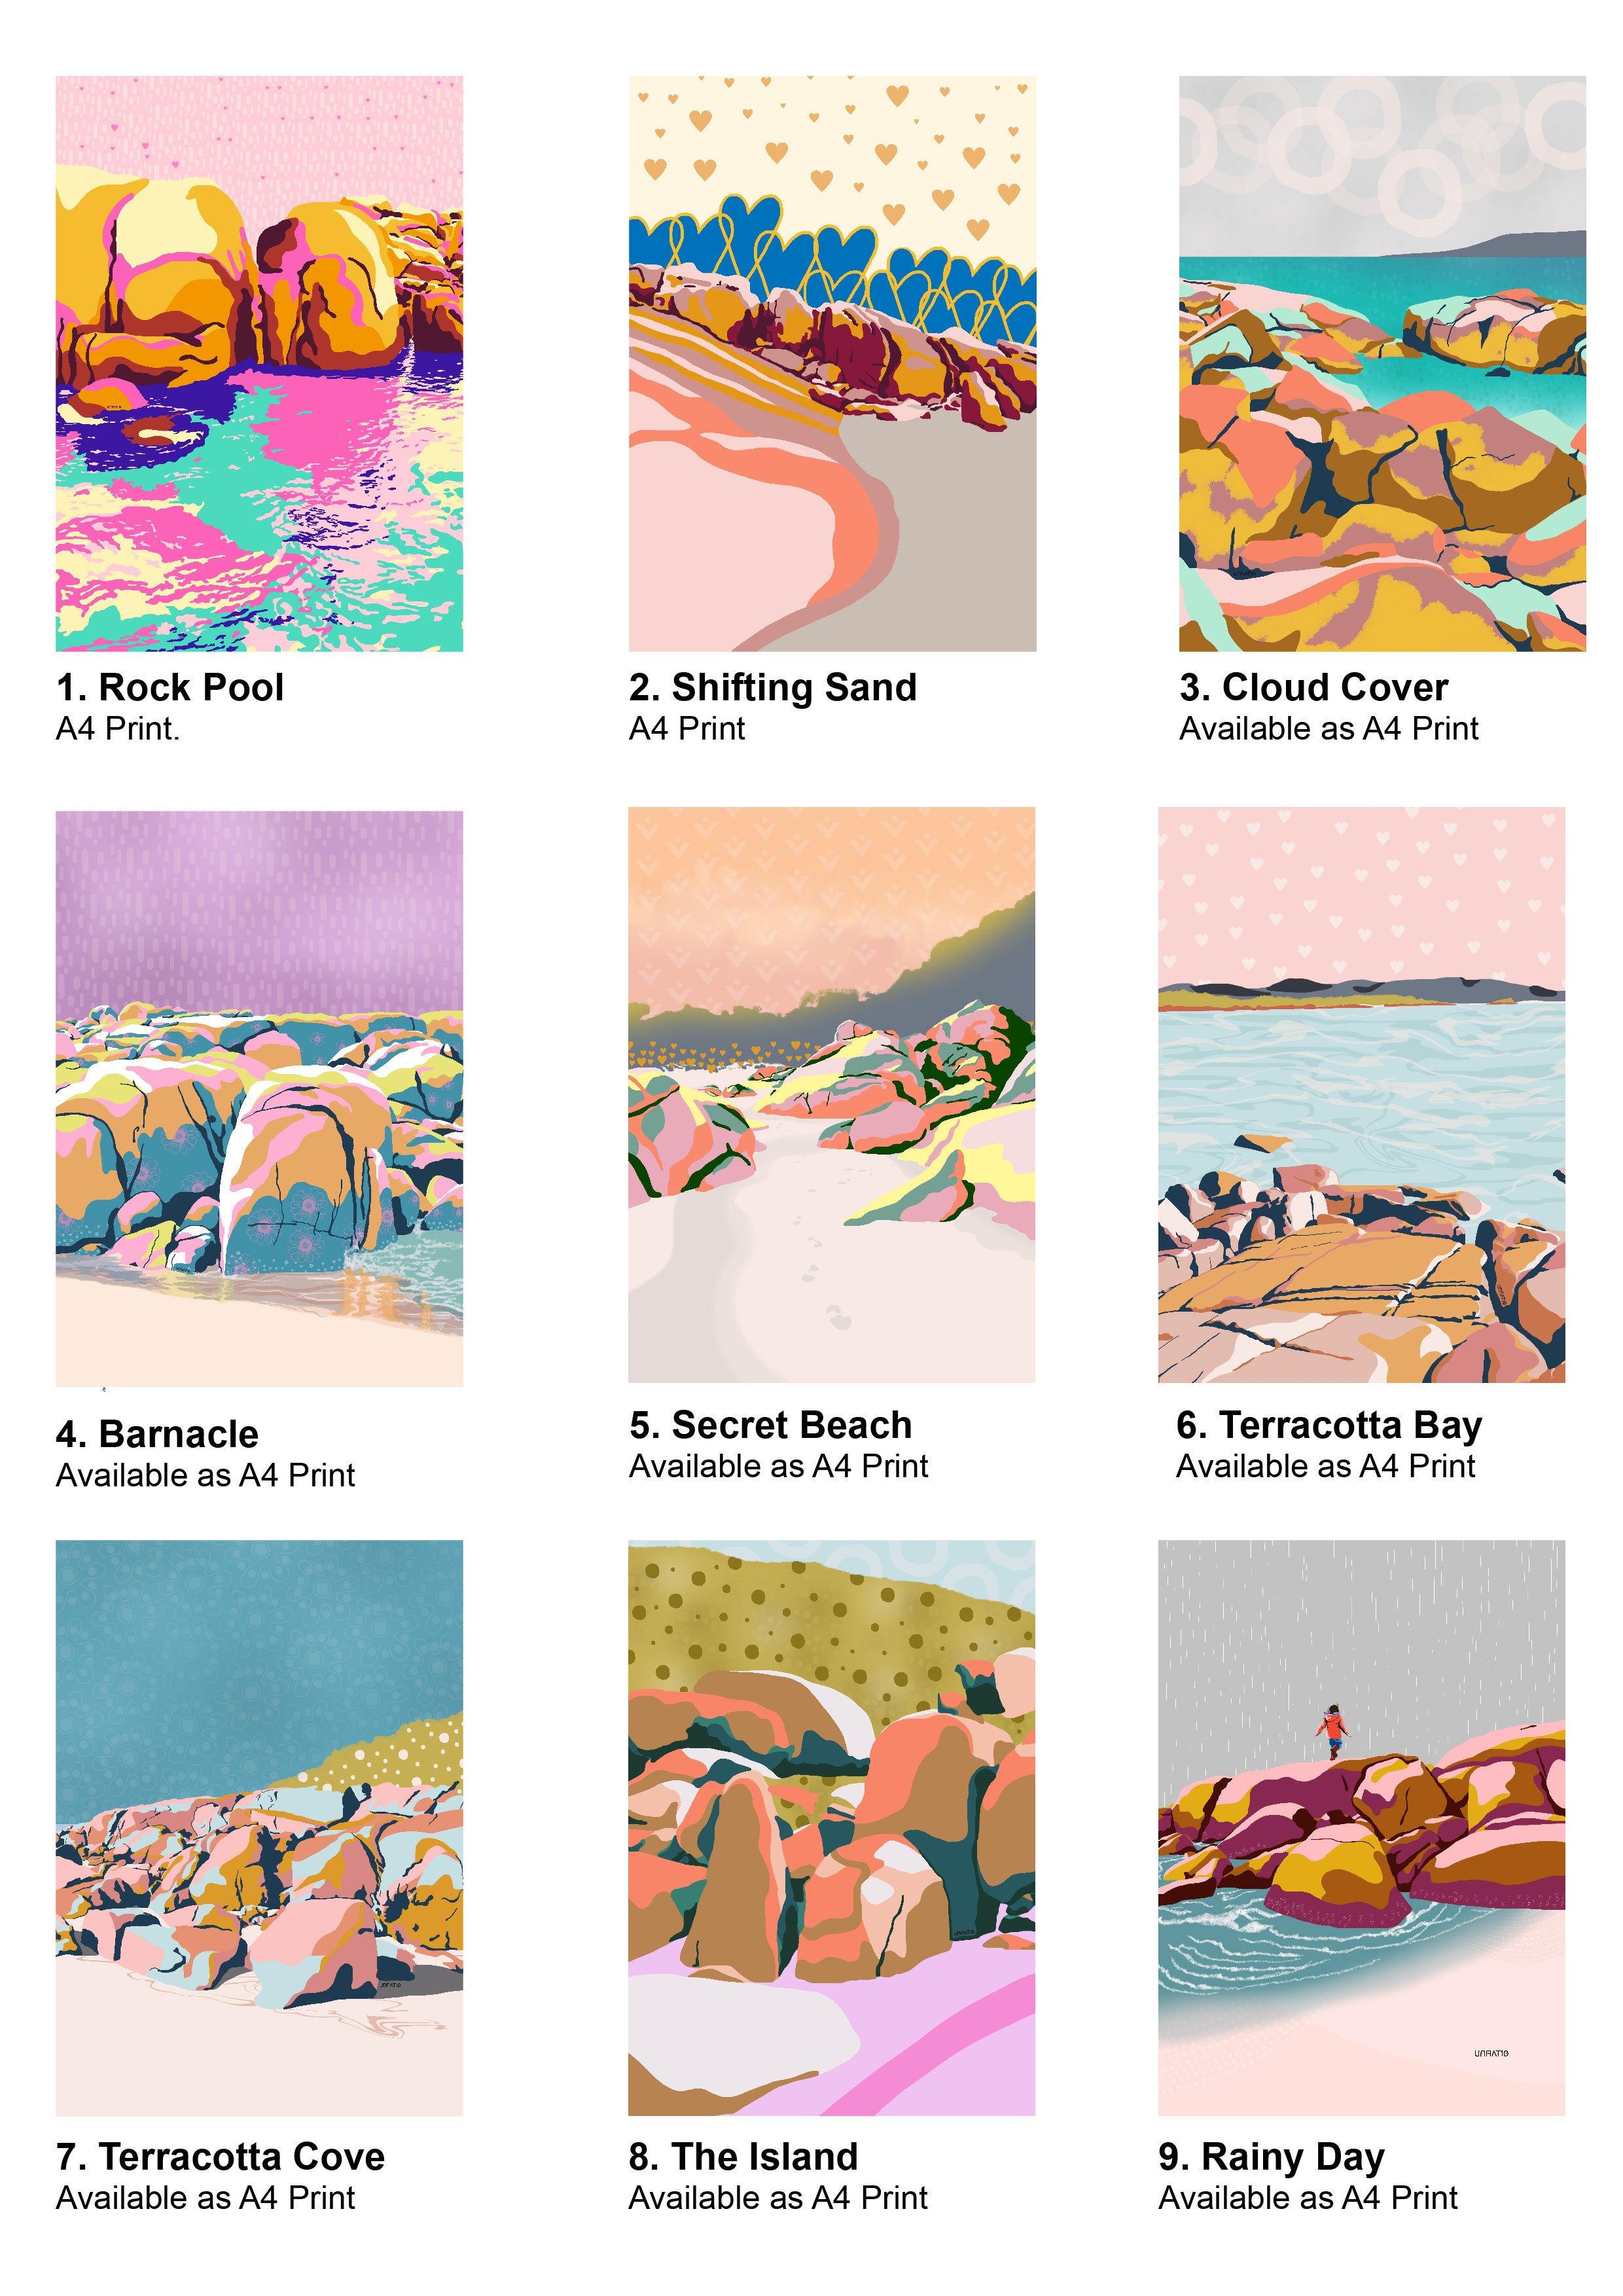 Australian artist wholesale catalogue for coastal art prints and greeting cards.